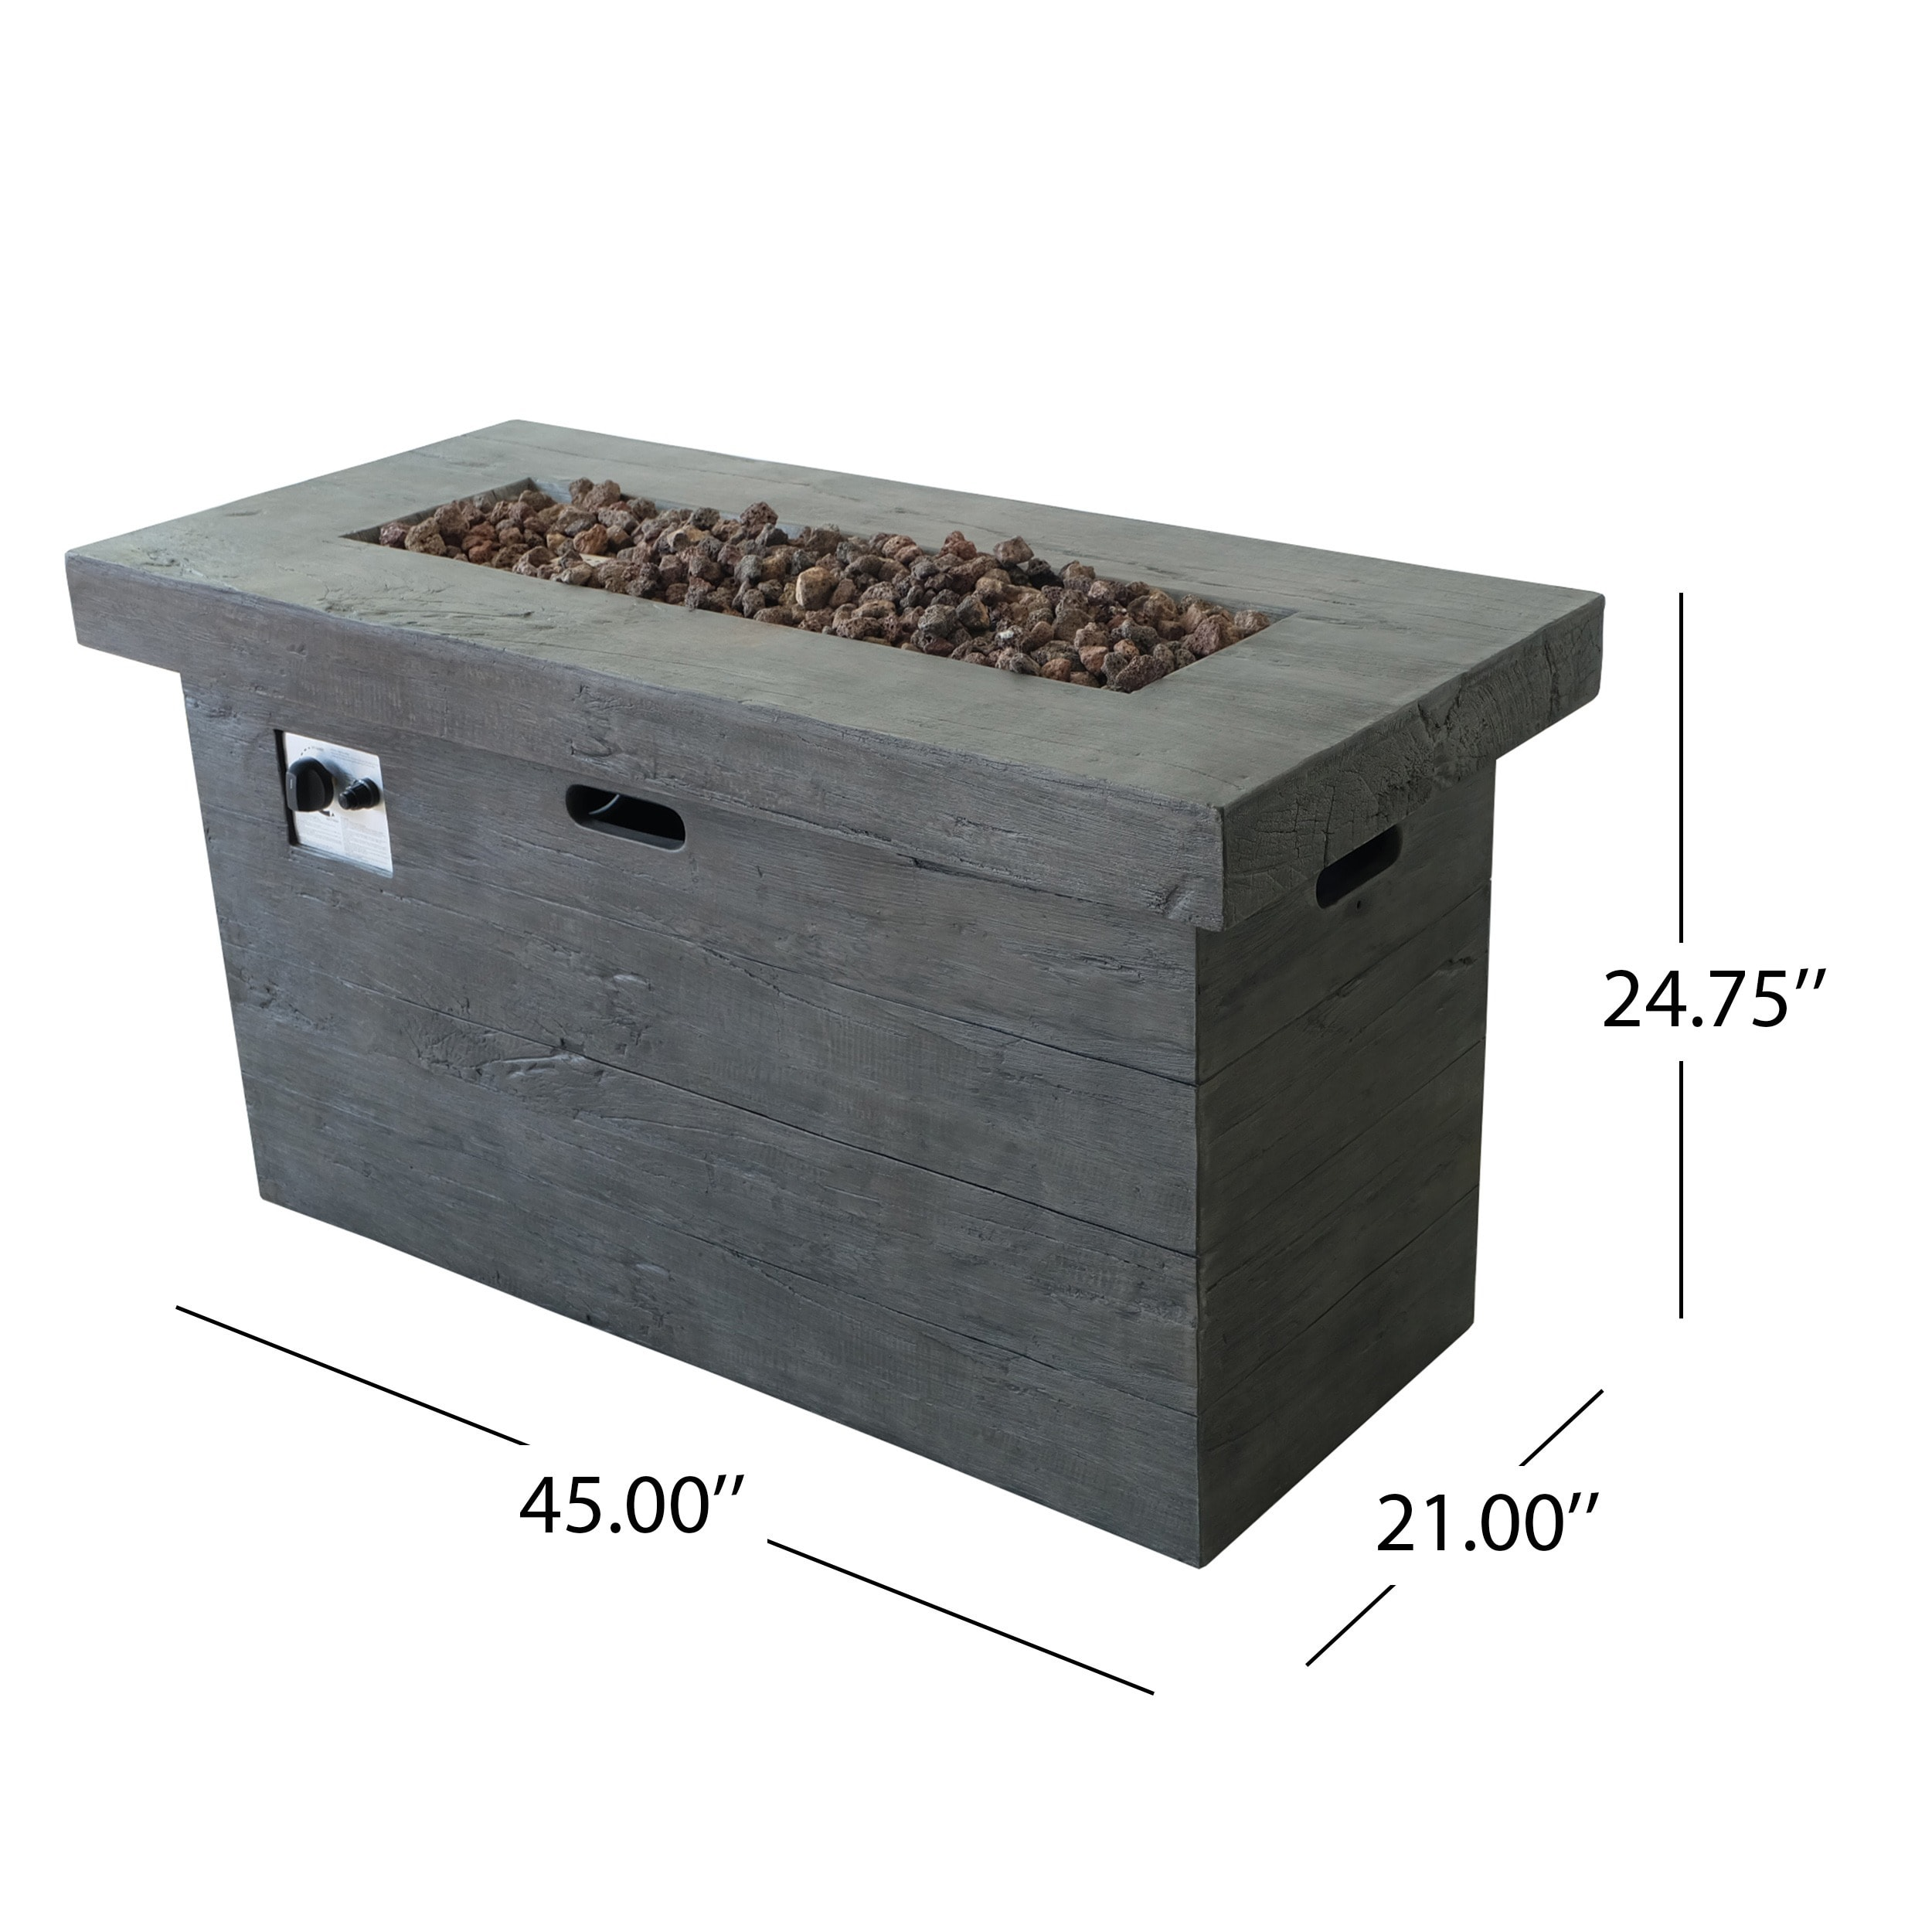 Custer Outdoor Rectangular Propane Fire Pit Table With Lava Rocks By Christopher Knight Home On Free Shipping Today 18599744